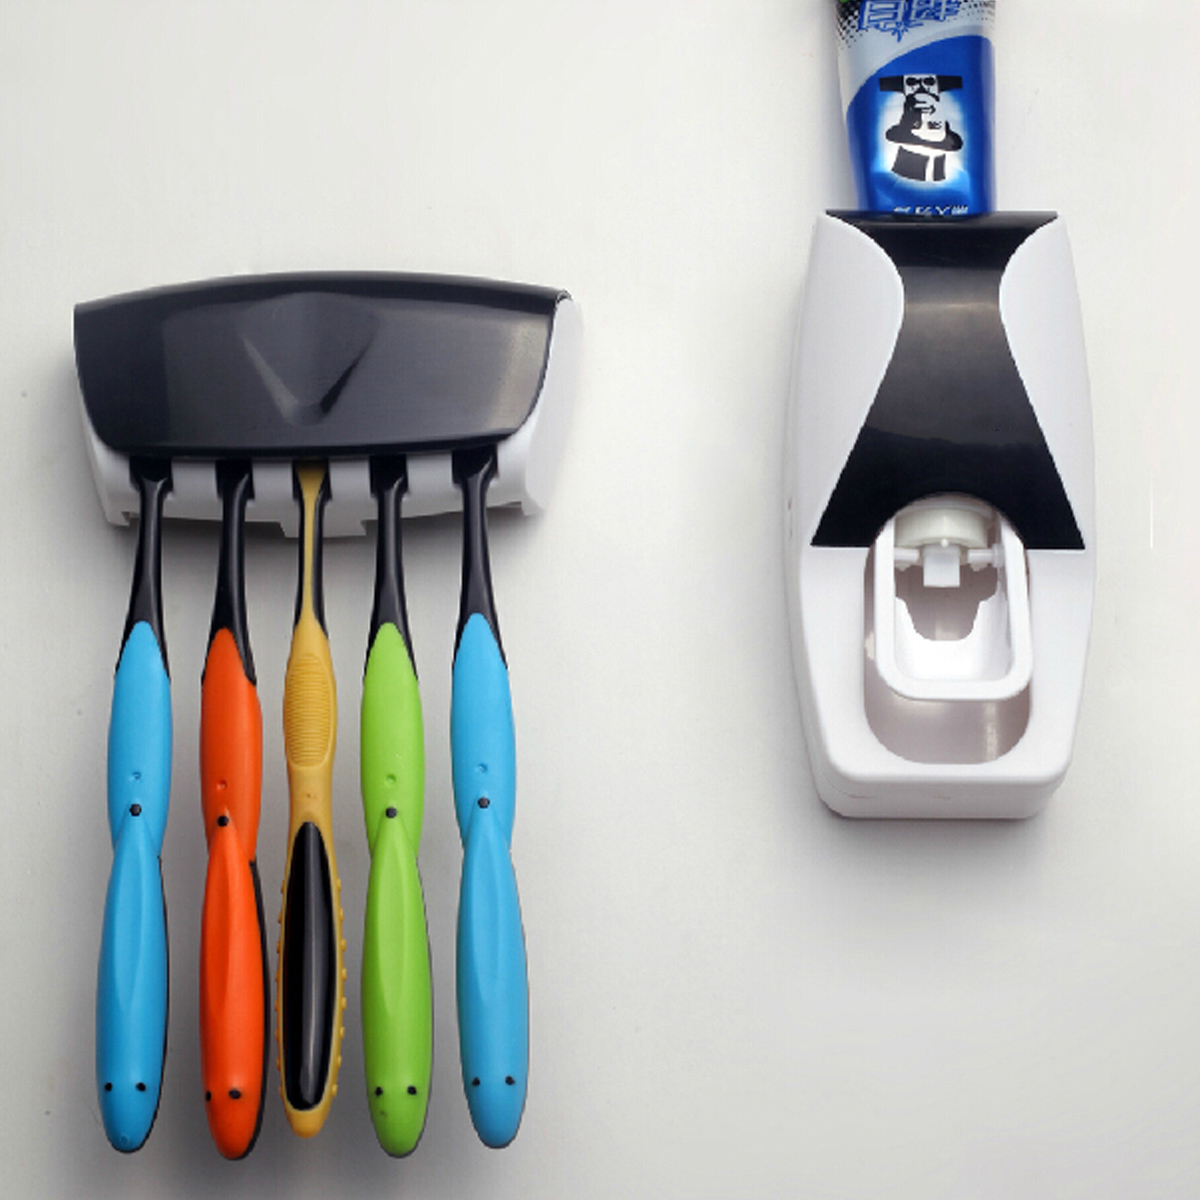 Automatic Toothpaste Dispenser with Wall Mount Toothbrush Holder Toothpaste Squeezer with 5 Brushes Set Kids Hands Free Toothpaste Dispenser for Shower Bathroom Sink